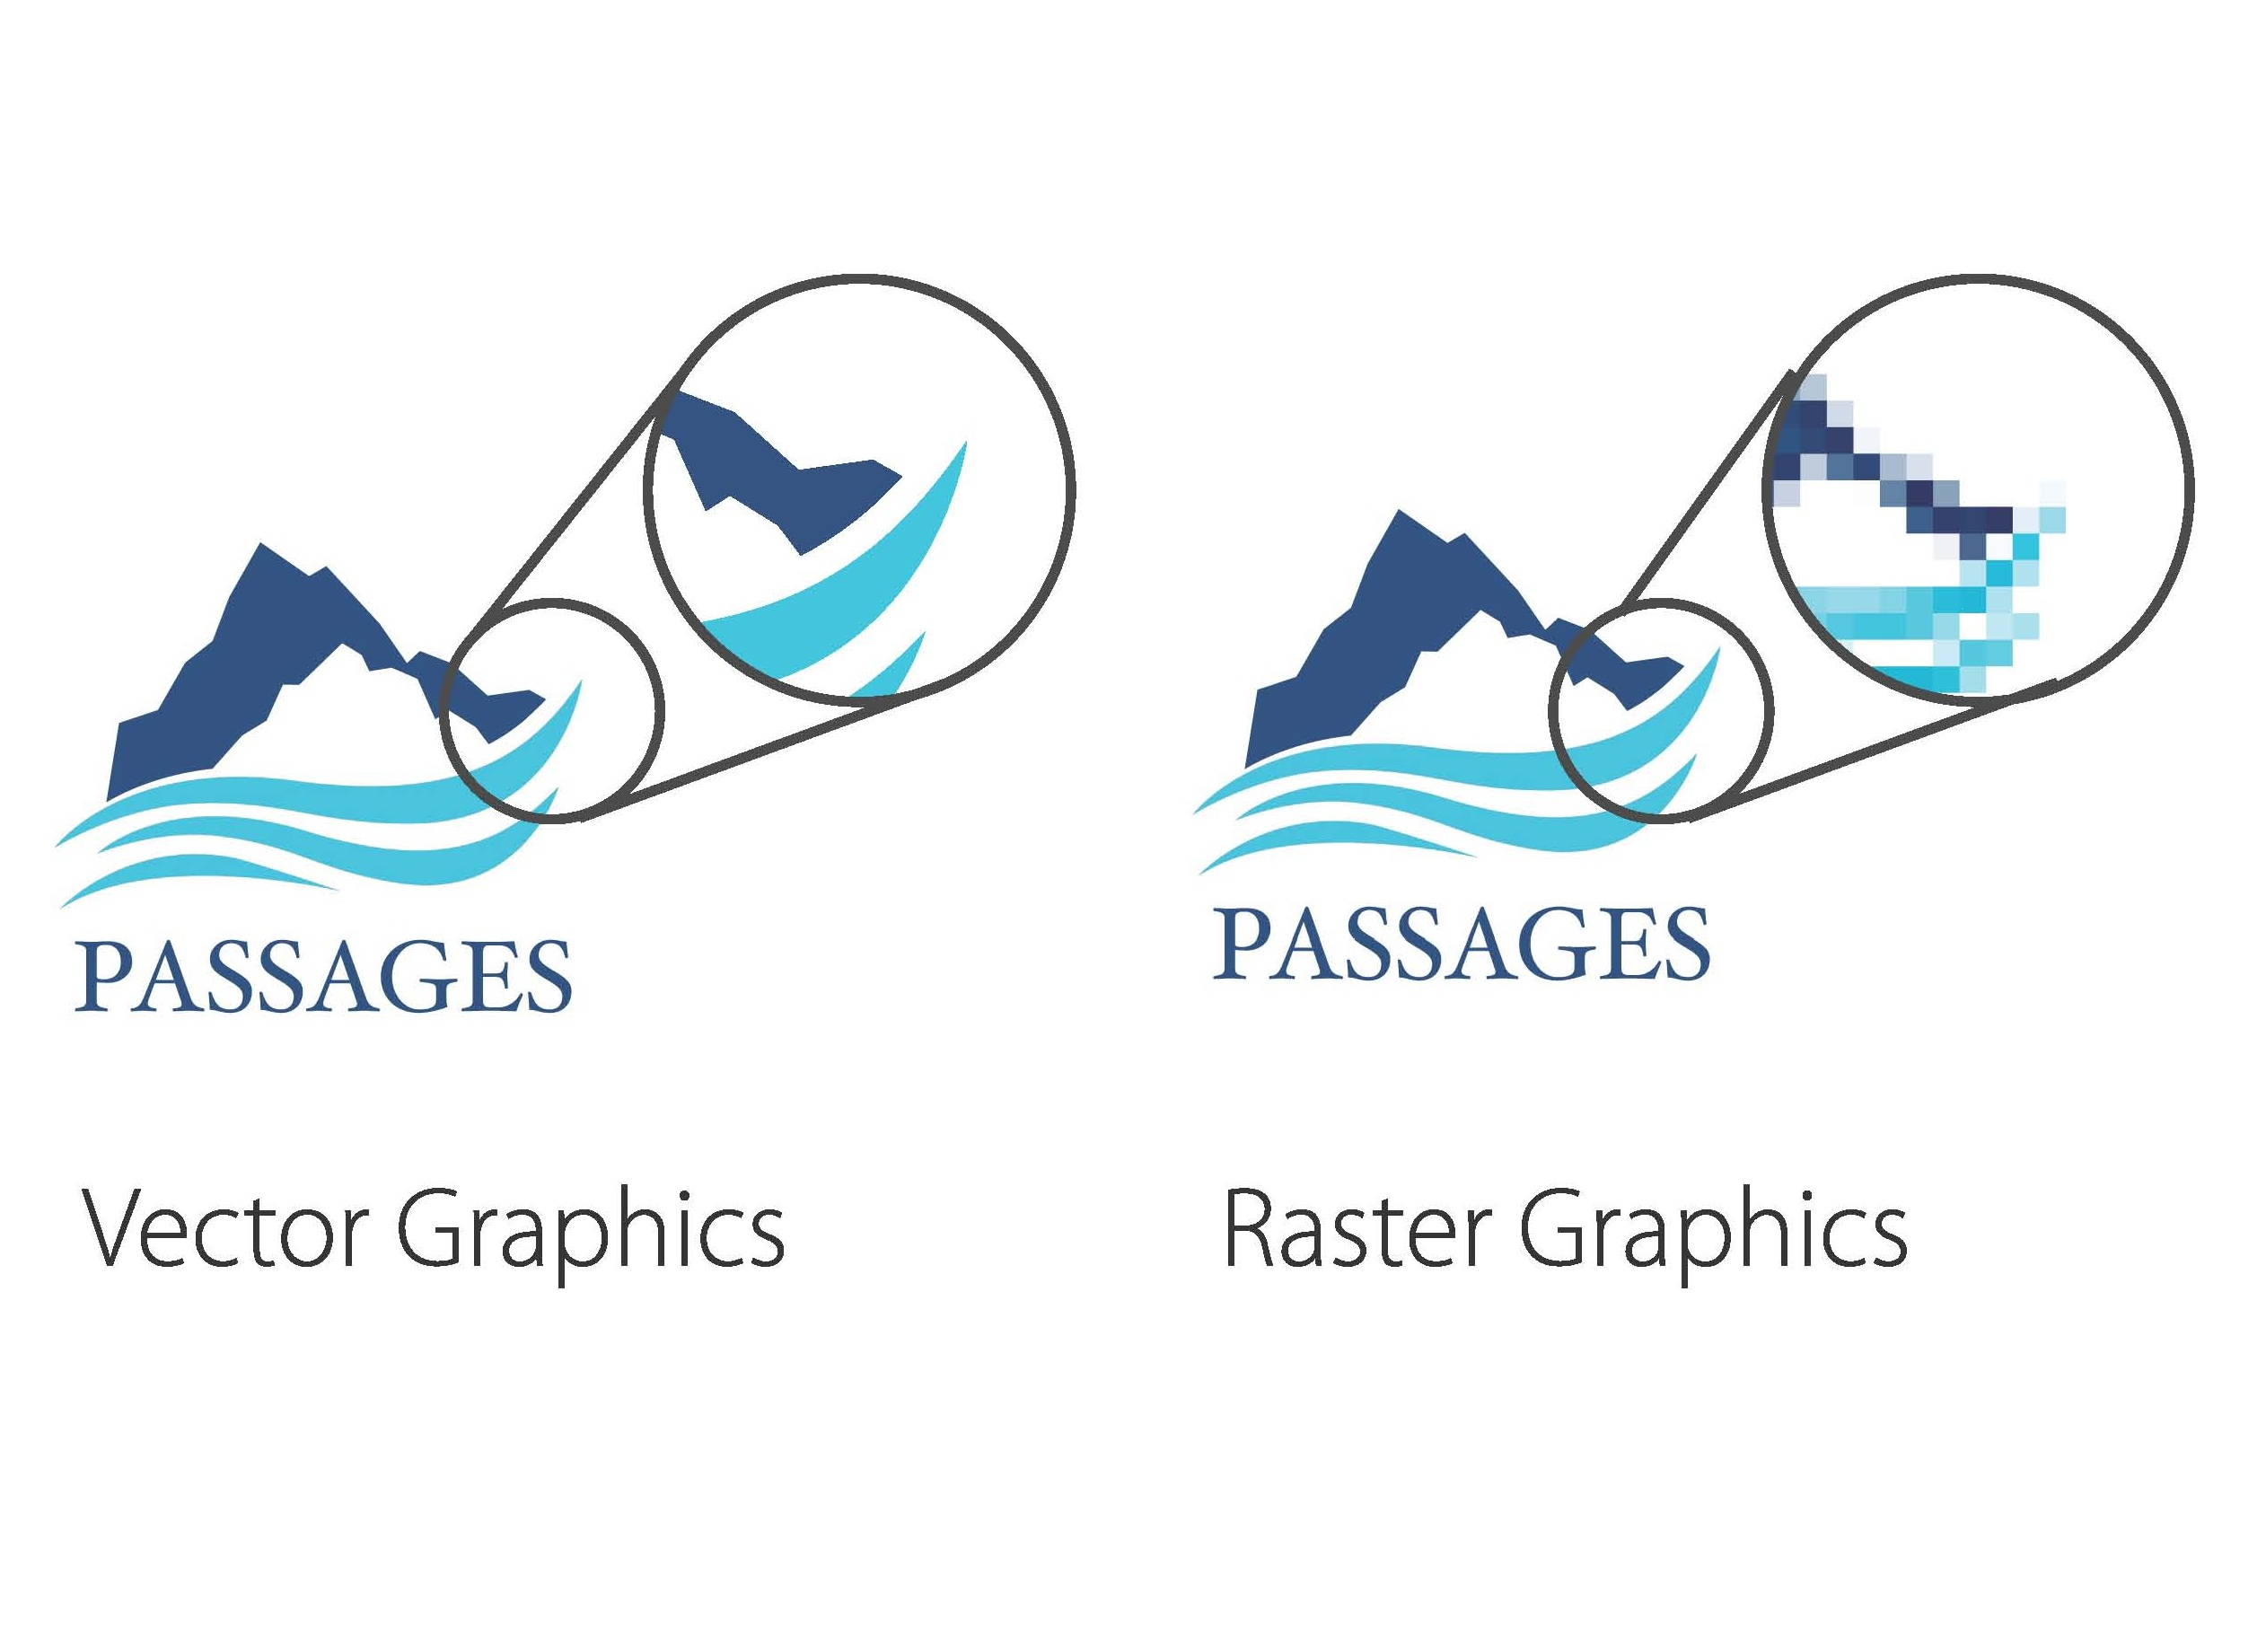 6 Difference Between Raster And Vector Images